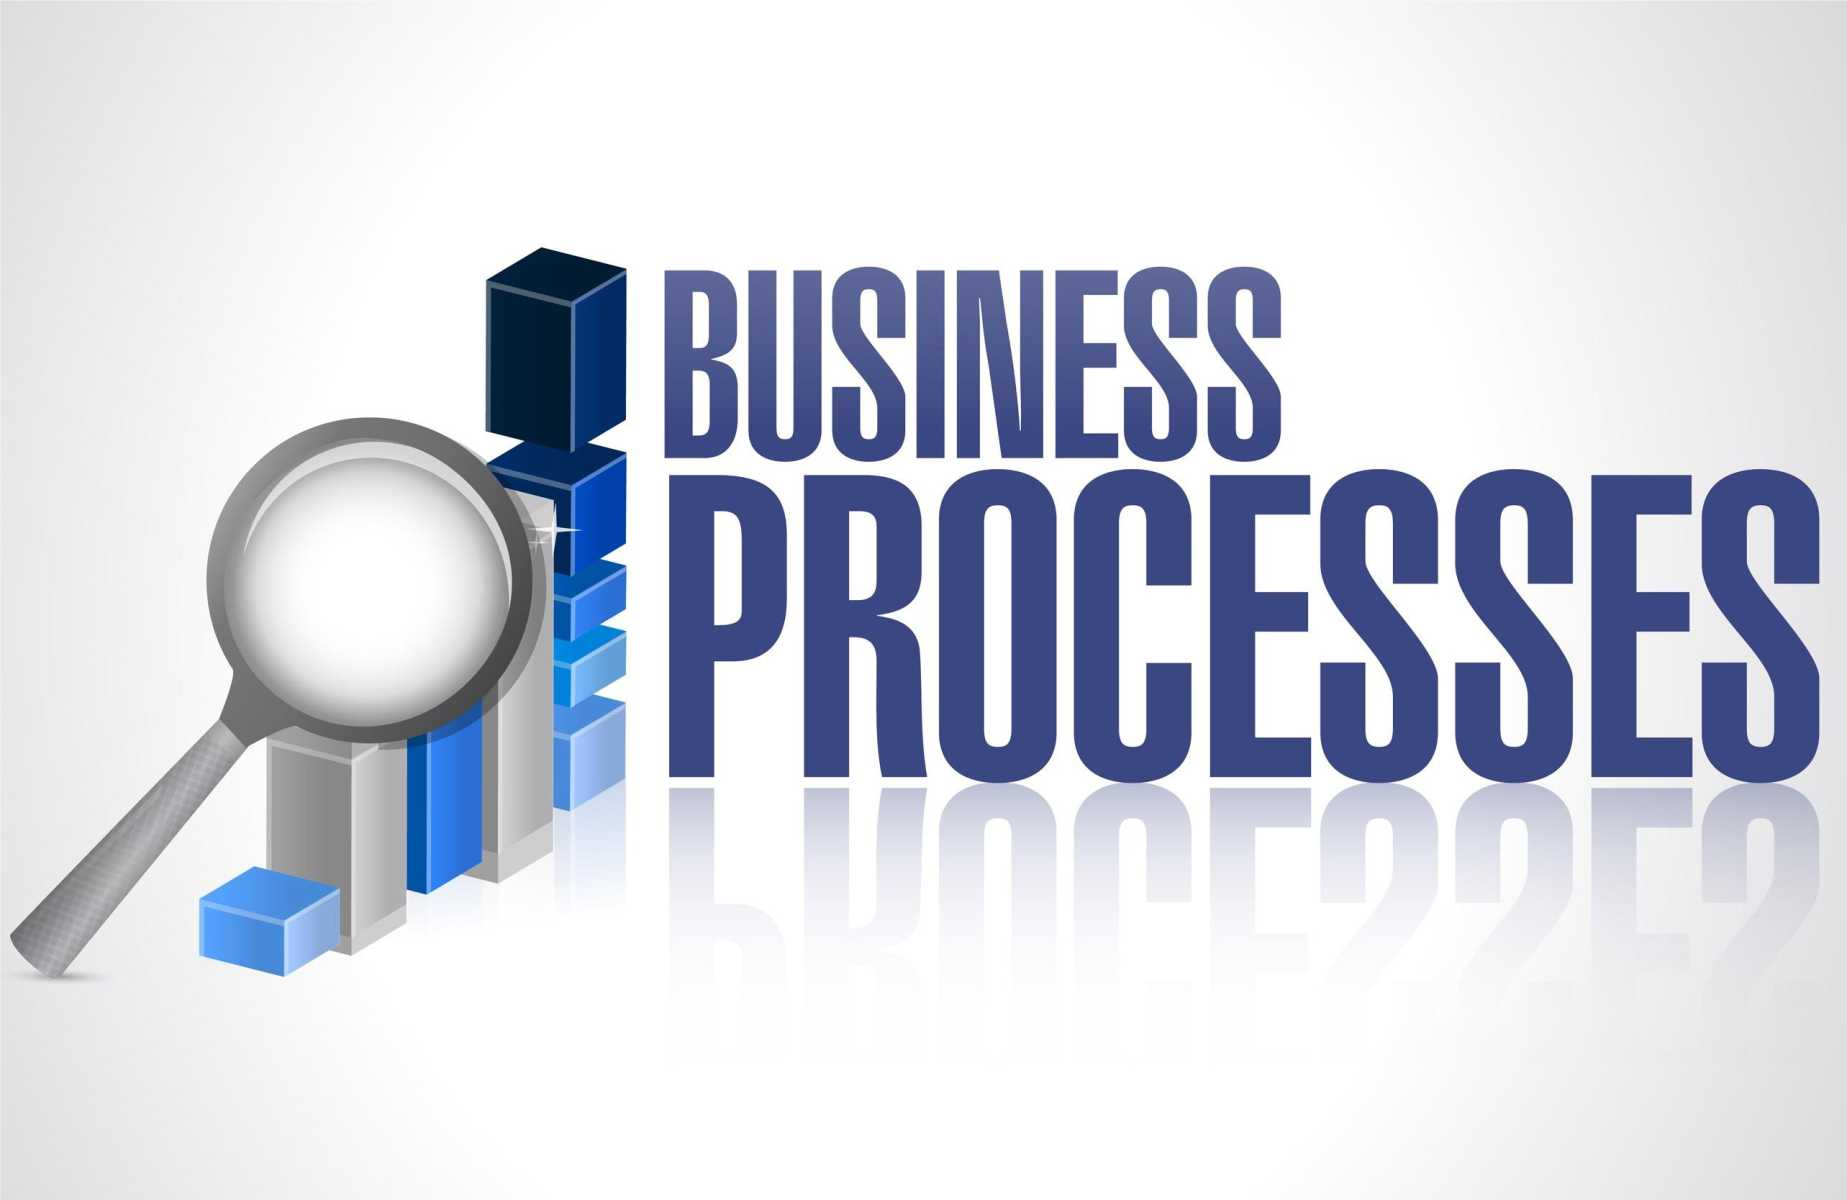 INTEGRATION OF BUSINESS PROCESS & JOB ANALYSIS